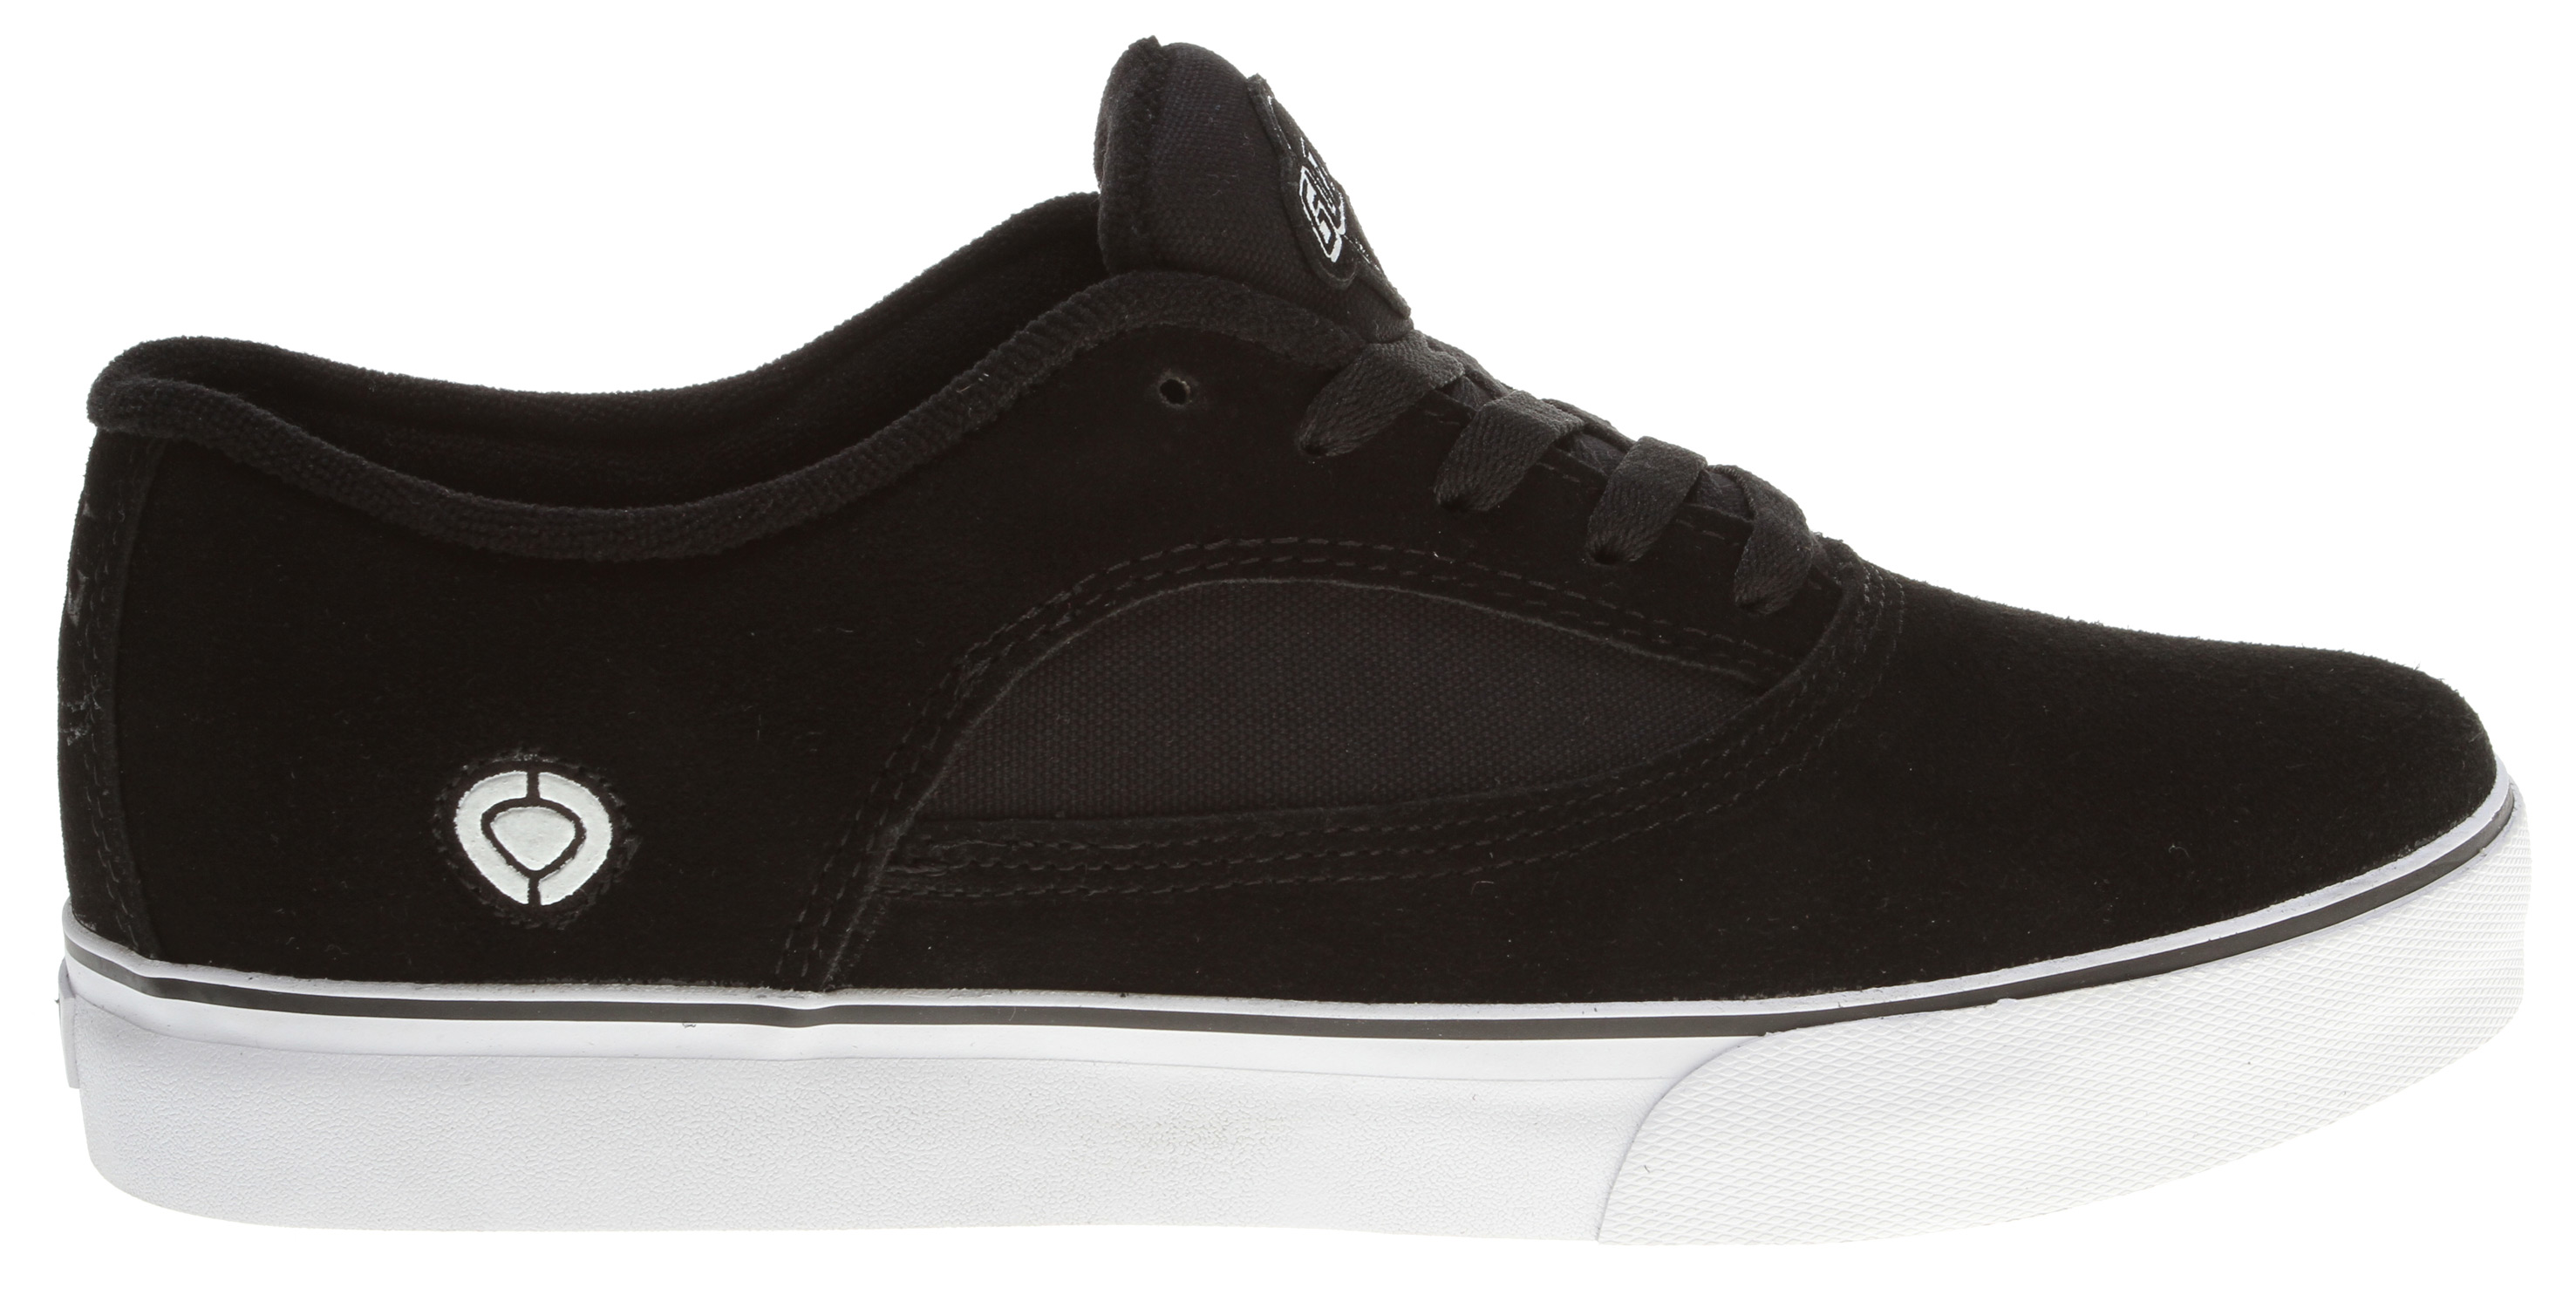 Skateboard Key Features of the Circa Griz Skate Shoes: Emmanuel Guzman signature shoe Vulcanized outsole Suede upper Thin tongue and collar Aerocush insole Fusiongrip - $44.95